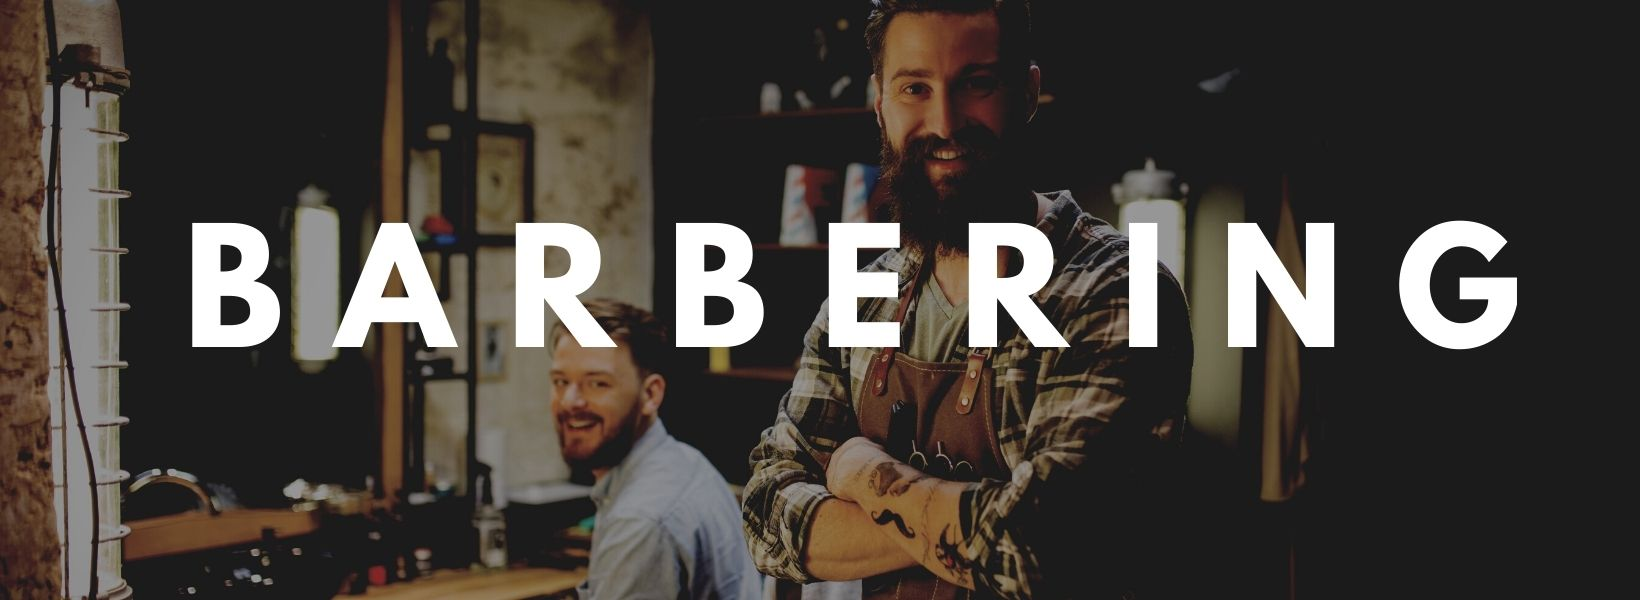 Online barbering course